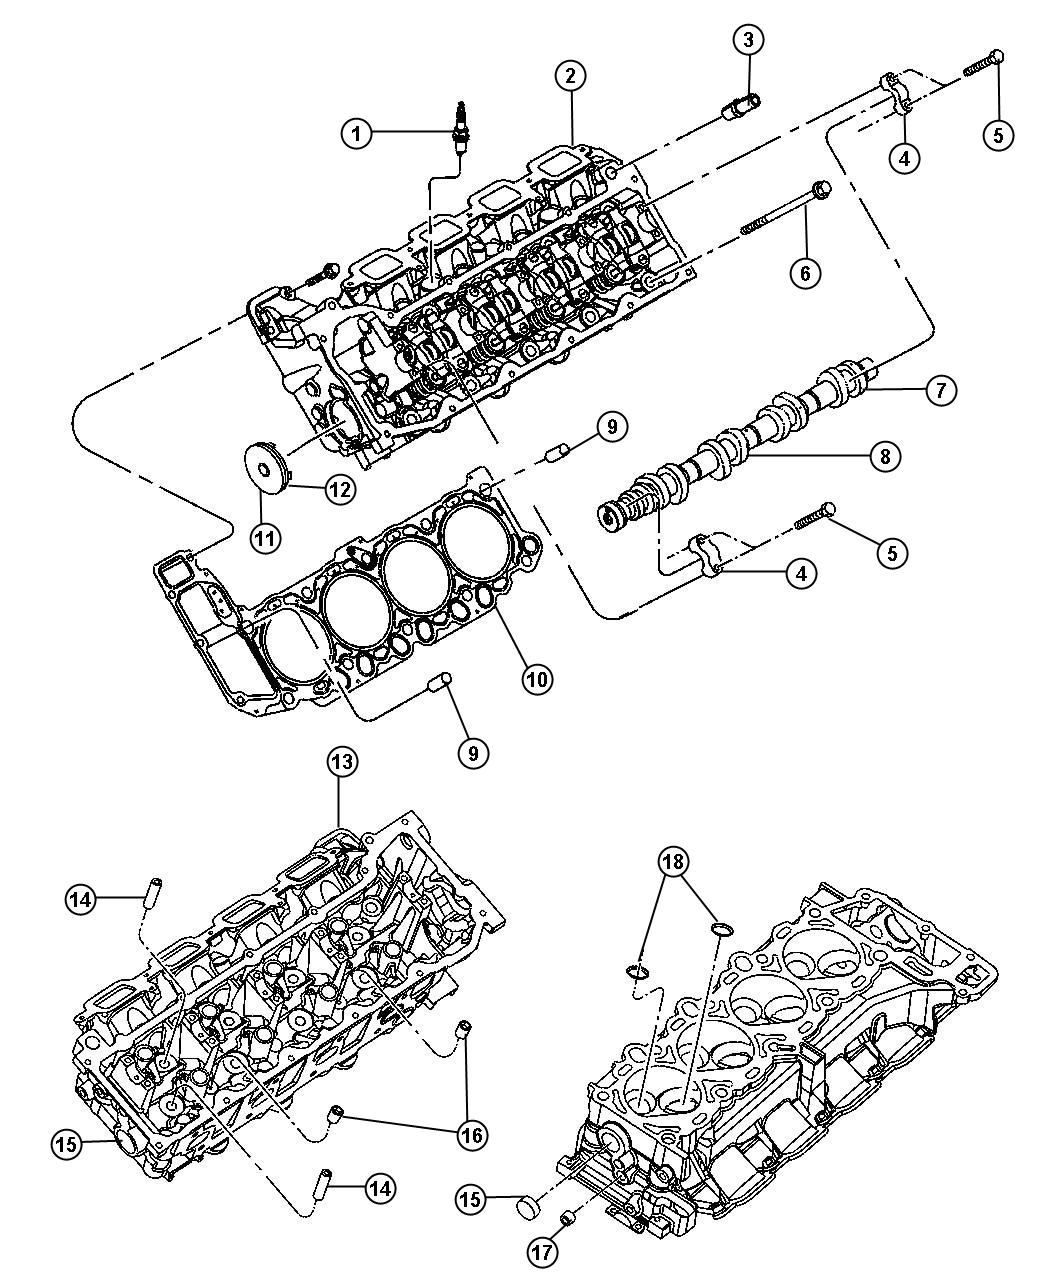 2007 Jeep Commander Cylinder Head And Mounting 4.7L [EVA